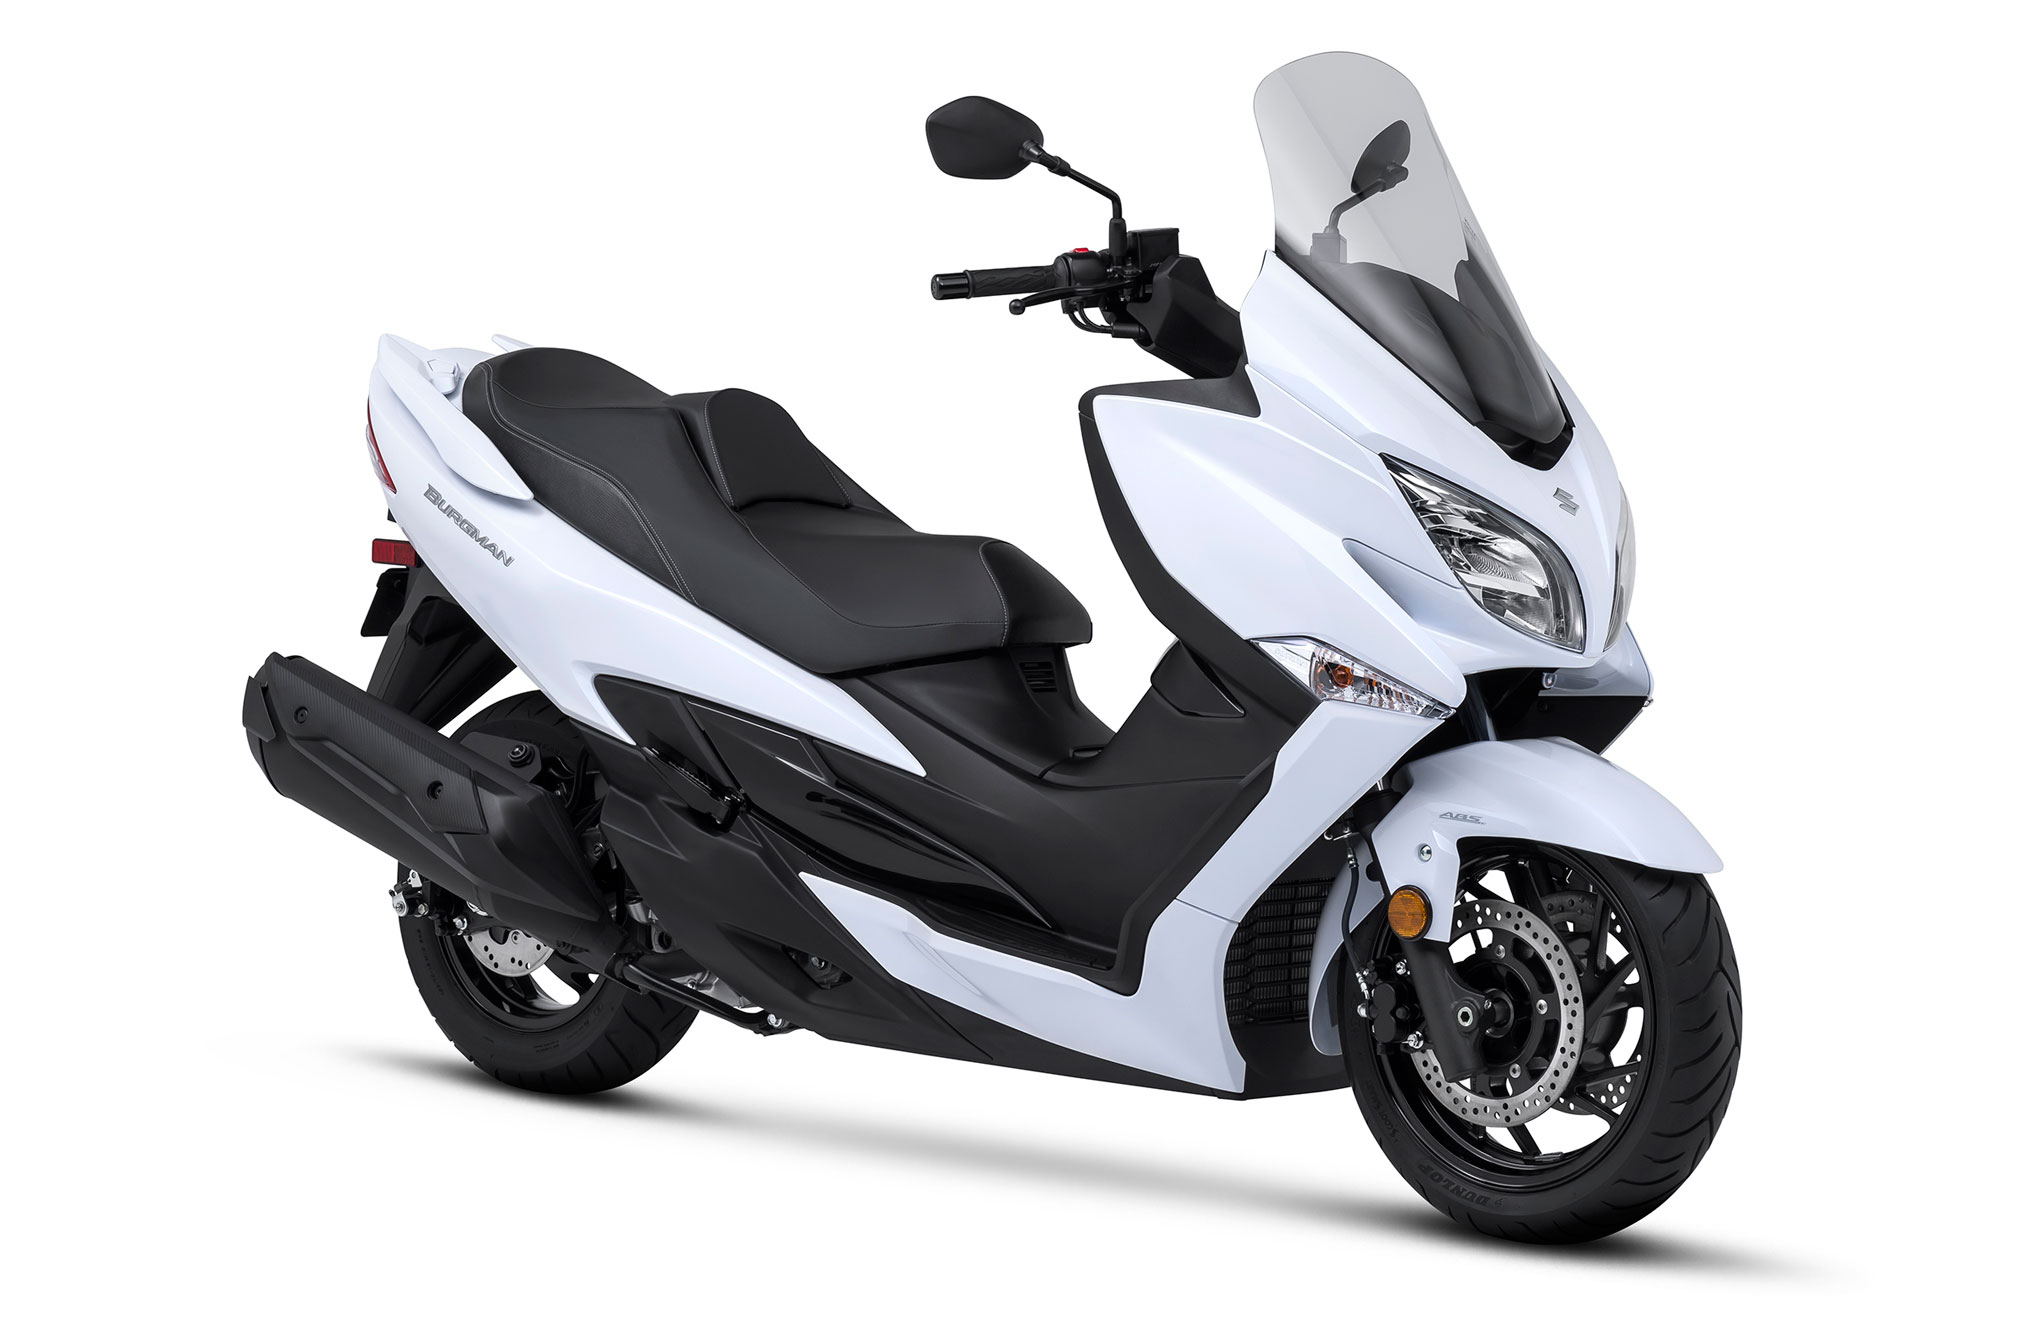 2018 Suzuki Burgman 400 ABS Review